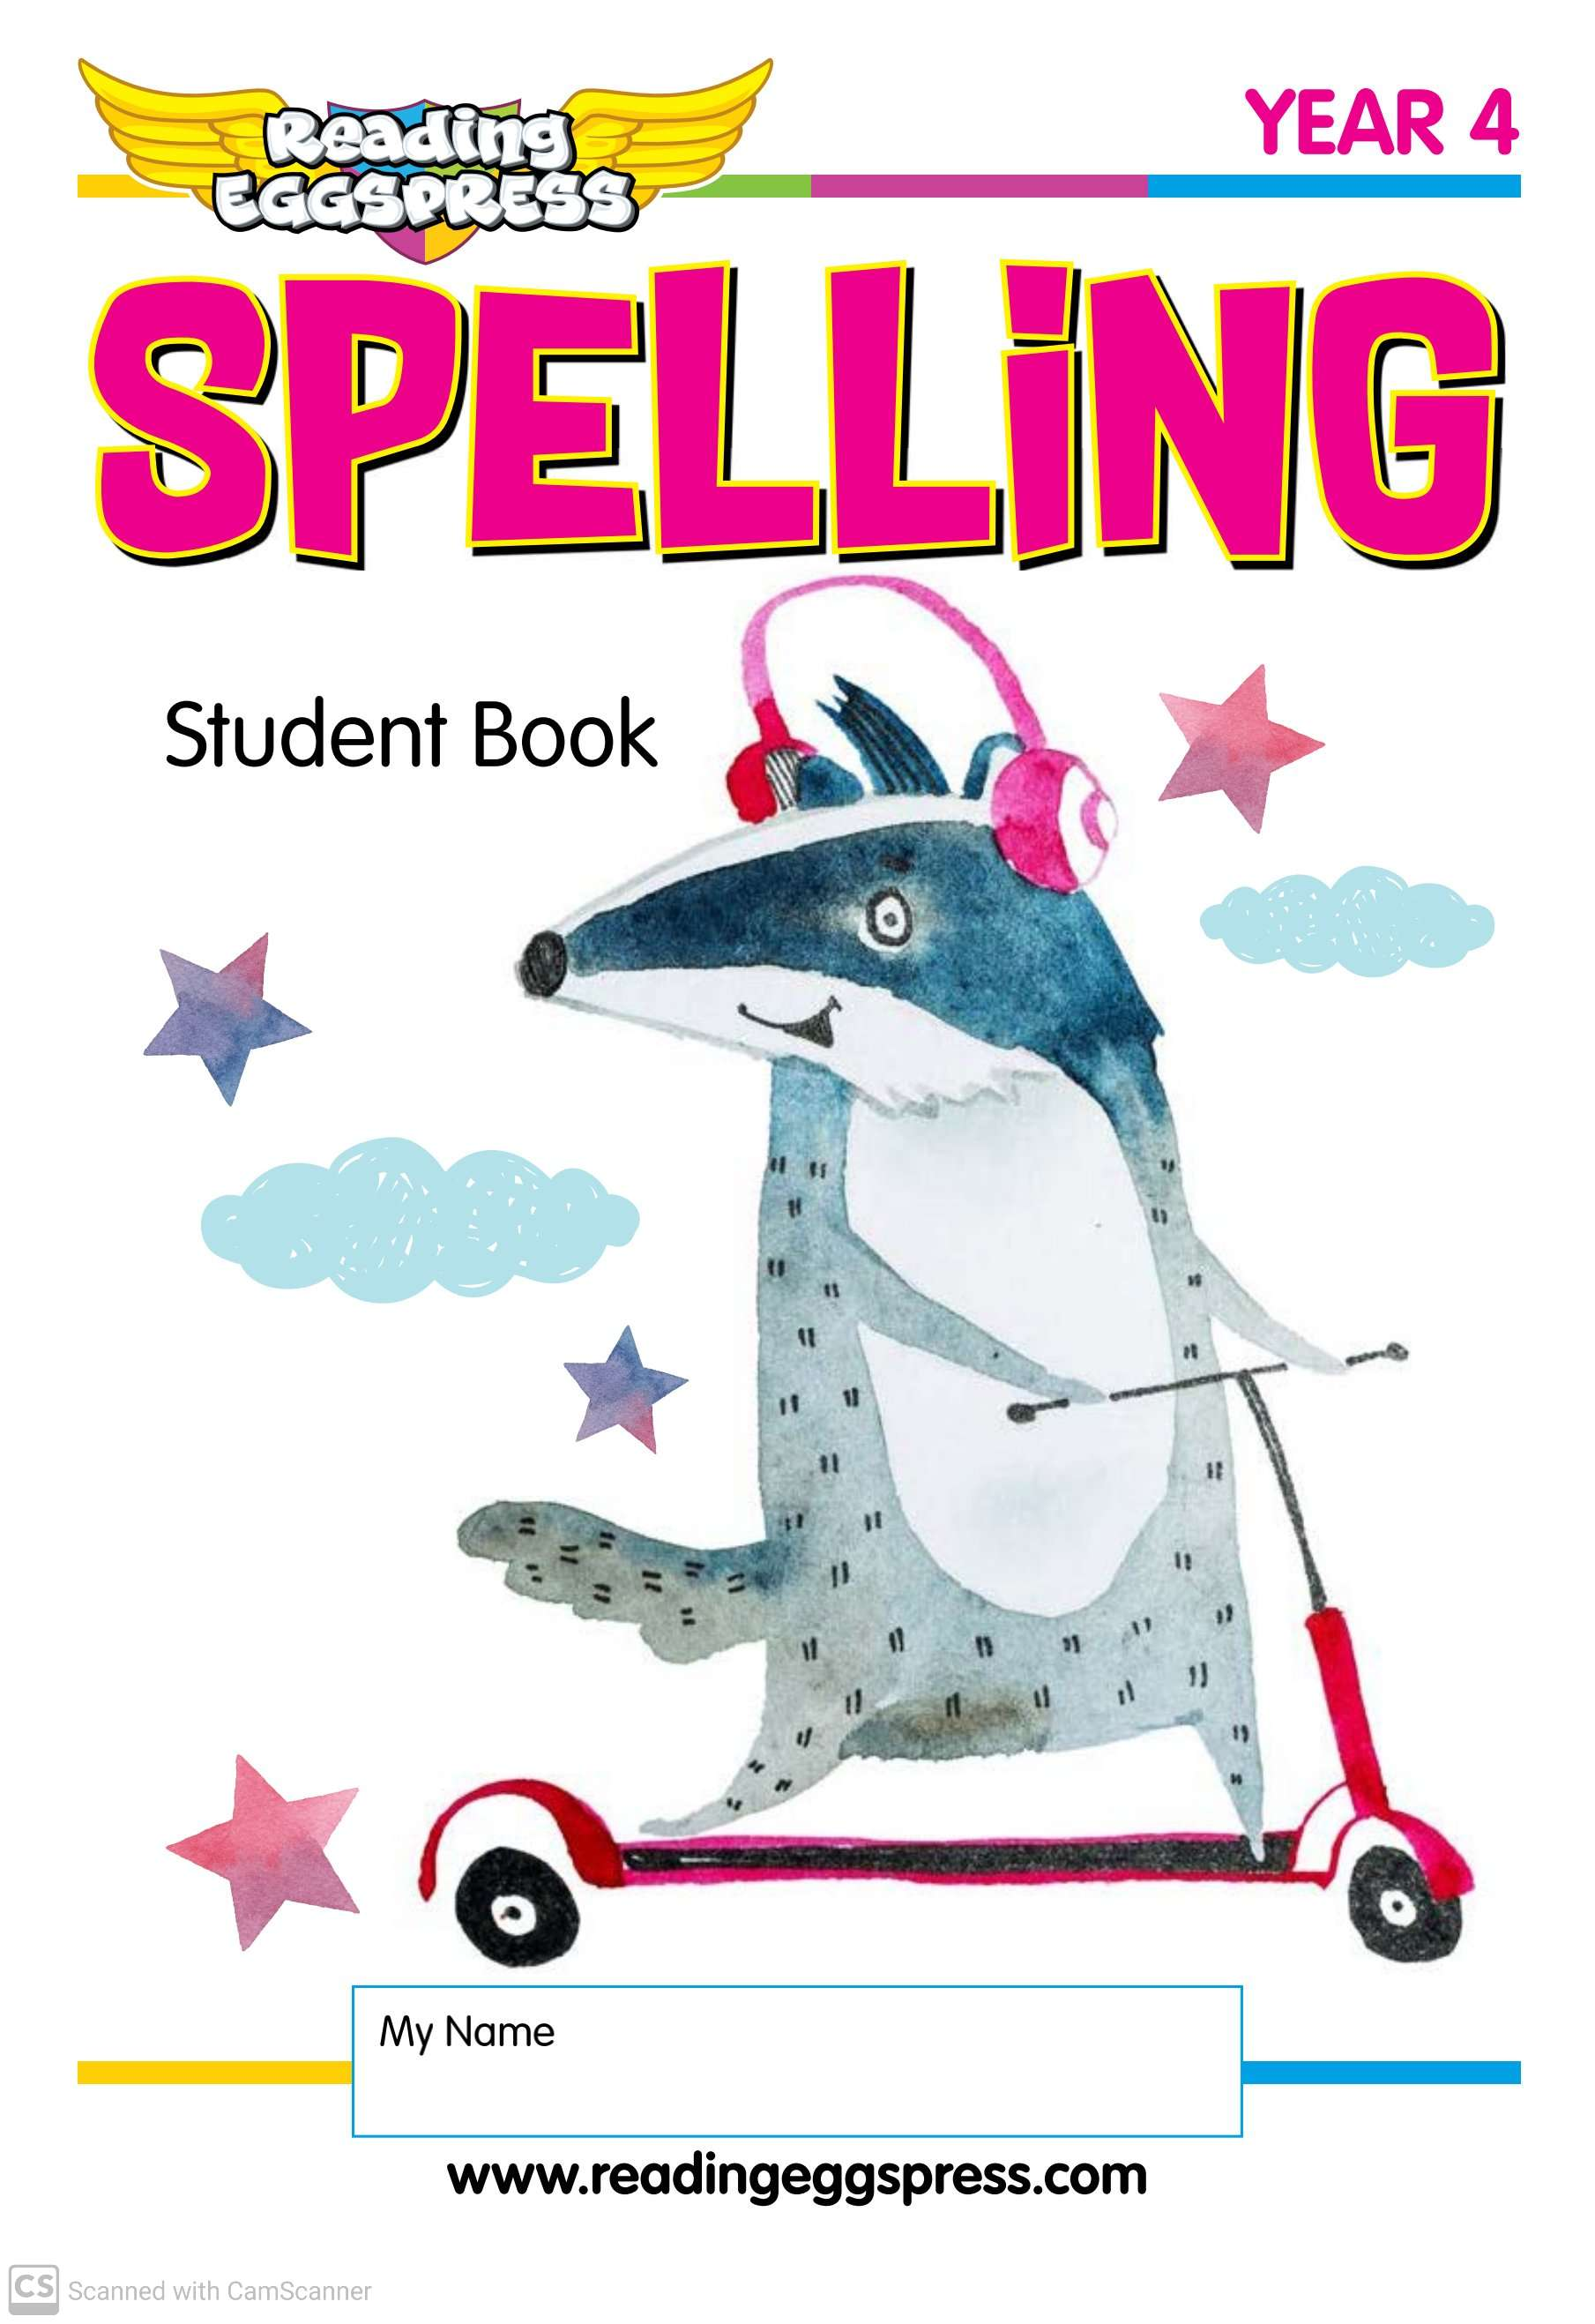 English Spelling Worksheets For Grade 3 Teaching Kids To